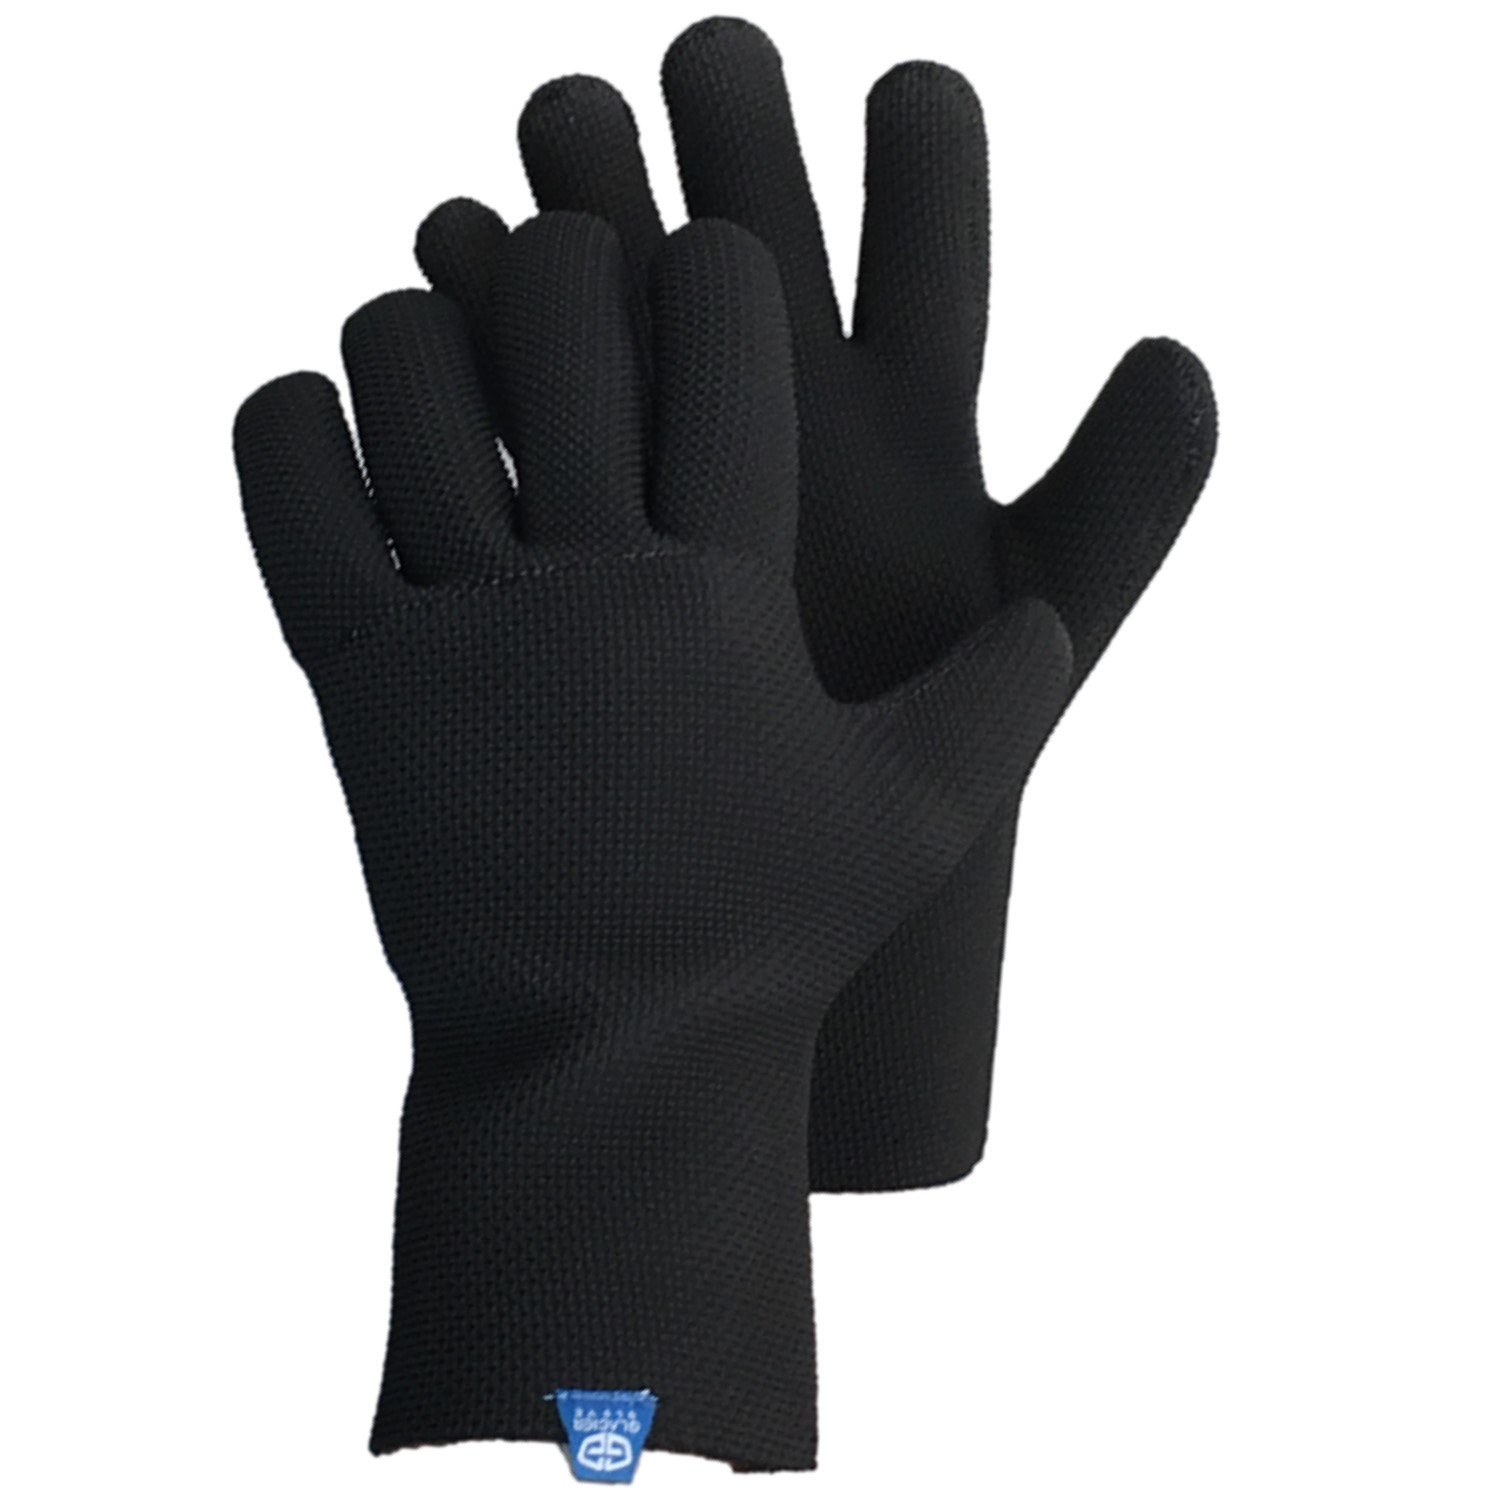 Mens leather gloves black friday - Glacier Glove Ice Bay Fishing Glove